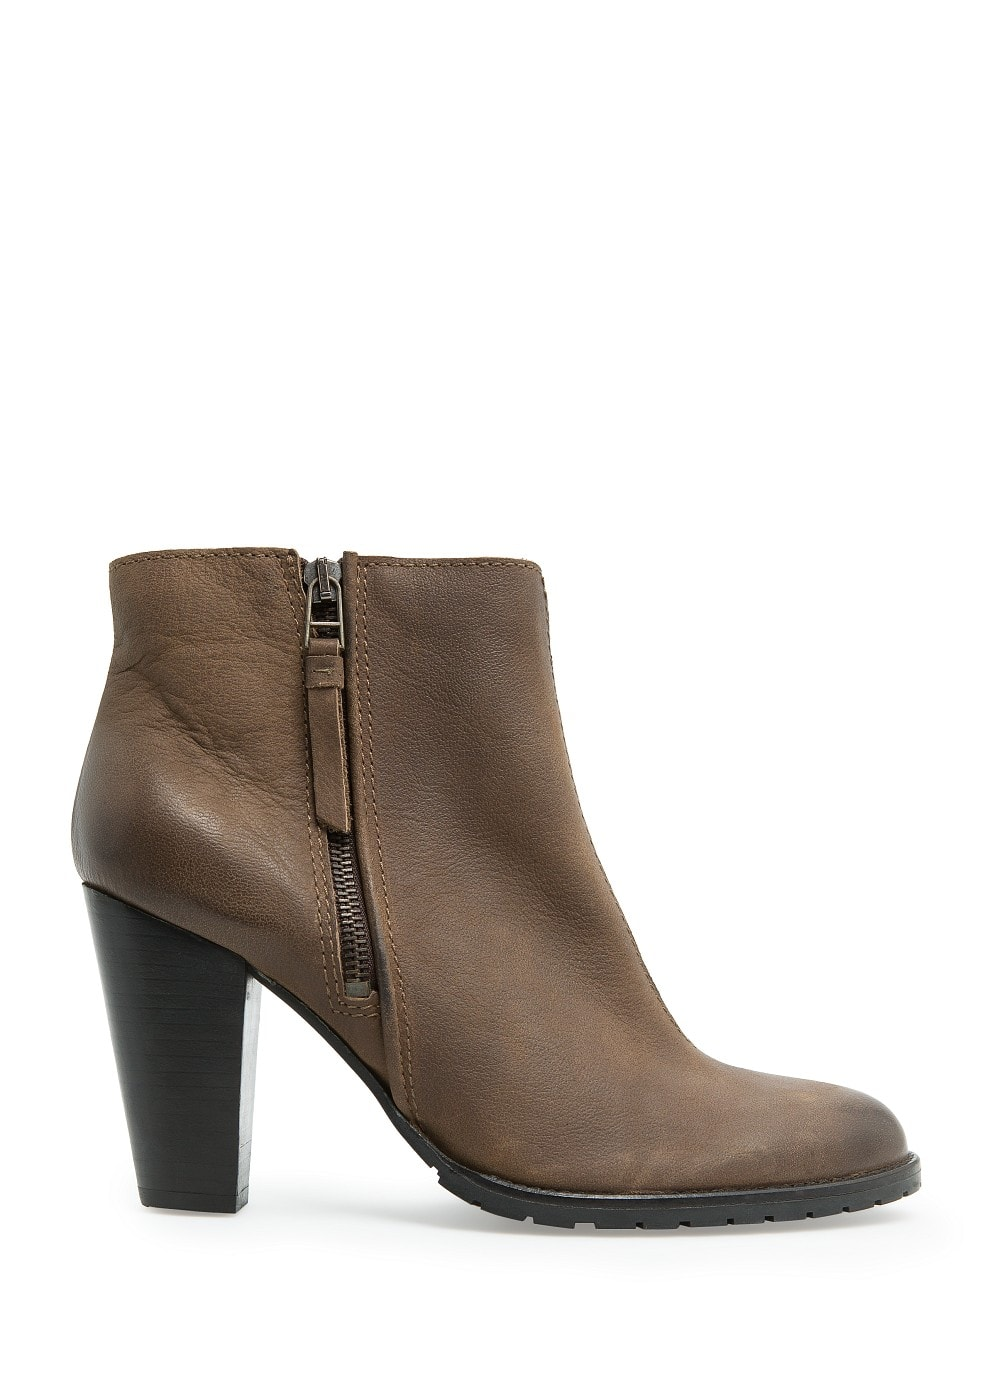 Wooden heel leather ankle boots